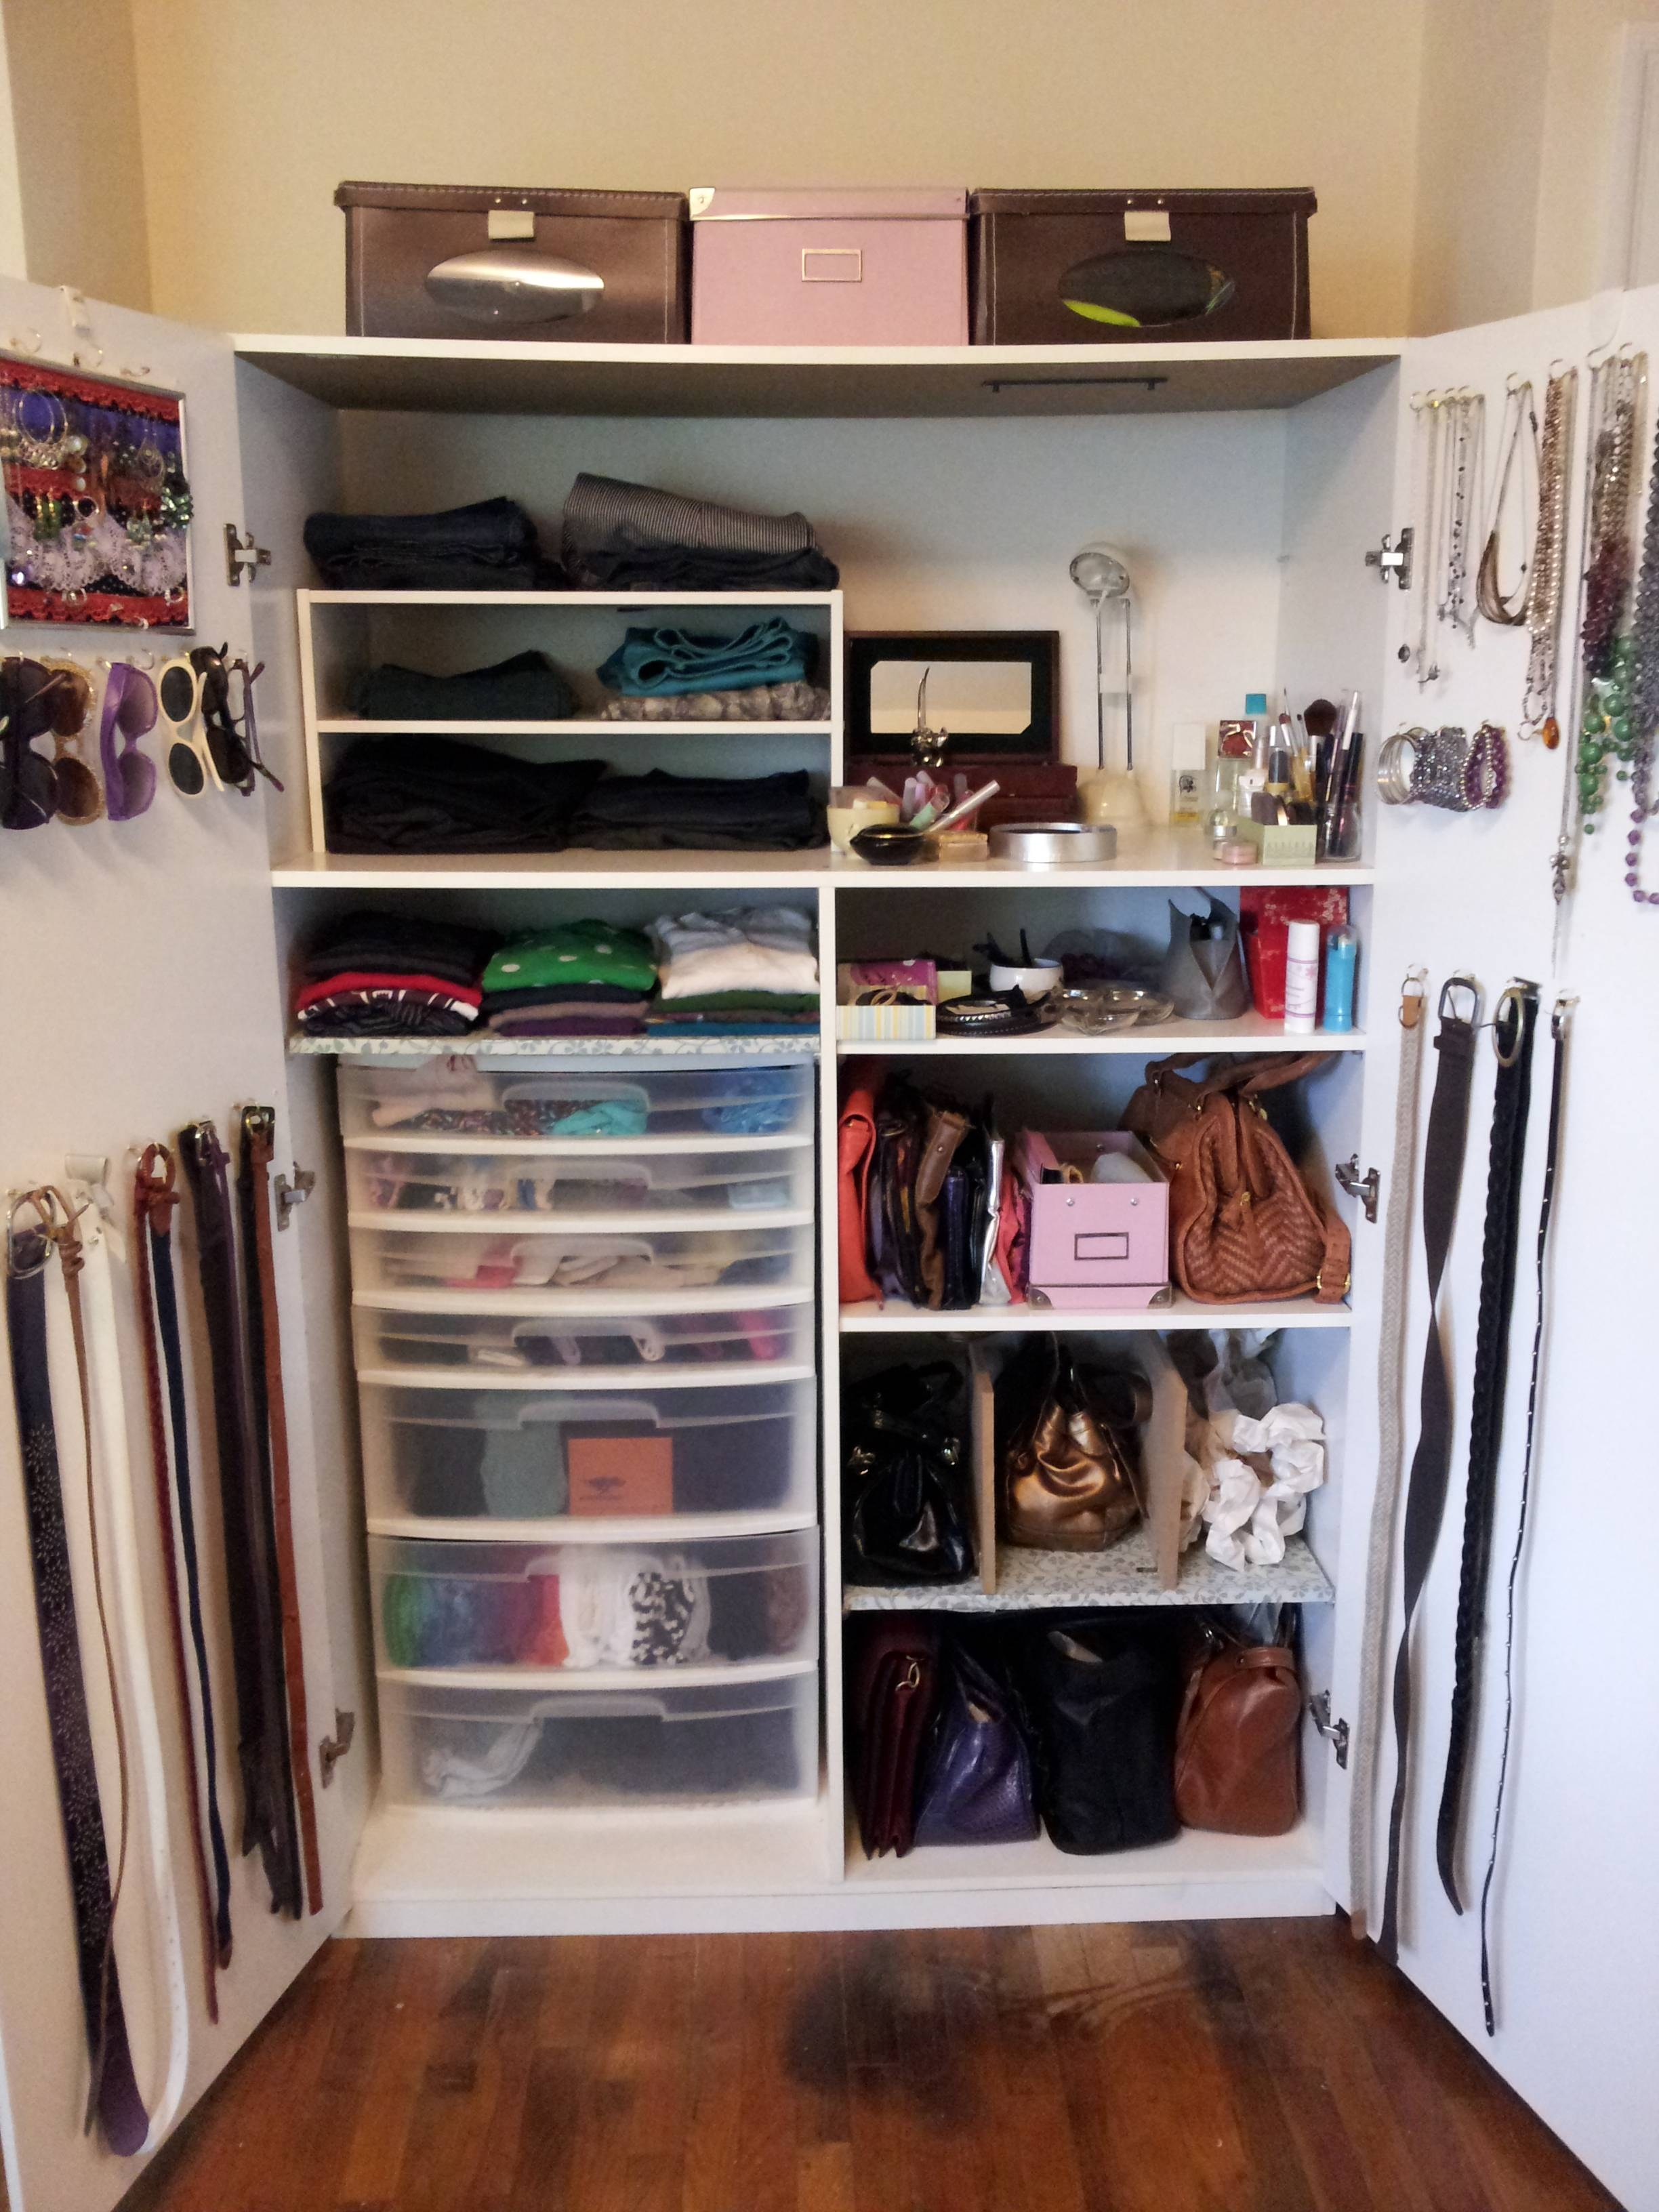 How To Organize A Lot Of Clothing In Very Little Closet Space In Bedroom Wardrobe Storages (View 16 of 25)